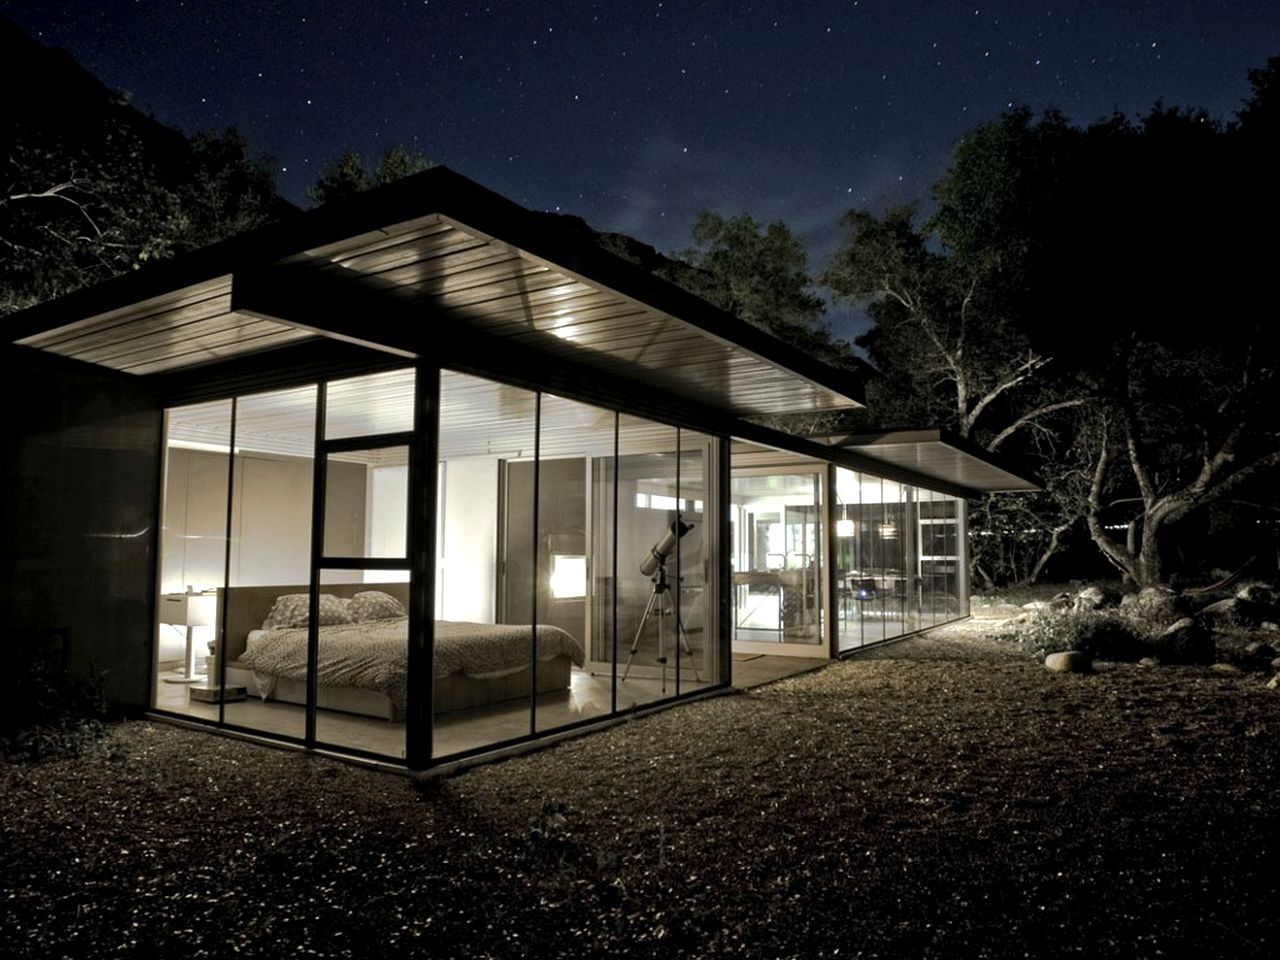 Exterior of a modern, glass house at night, with all the lights on and visible inside in California.